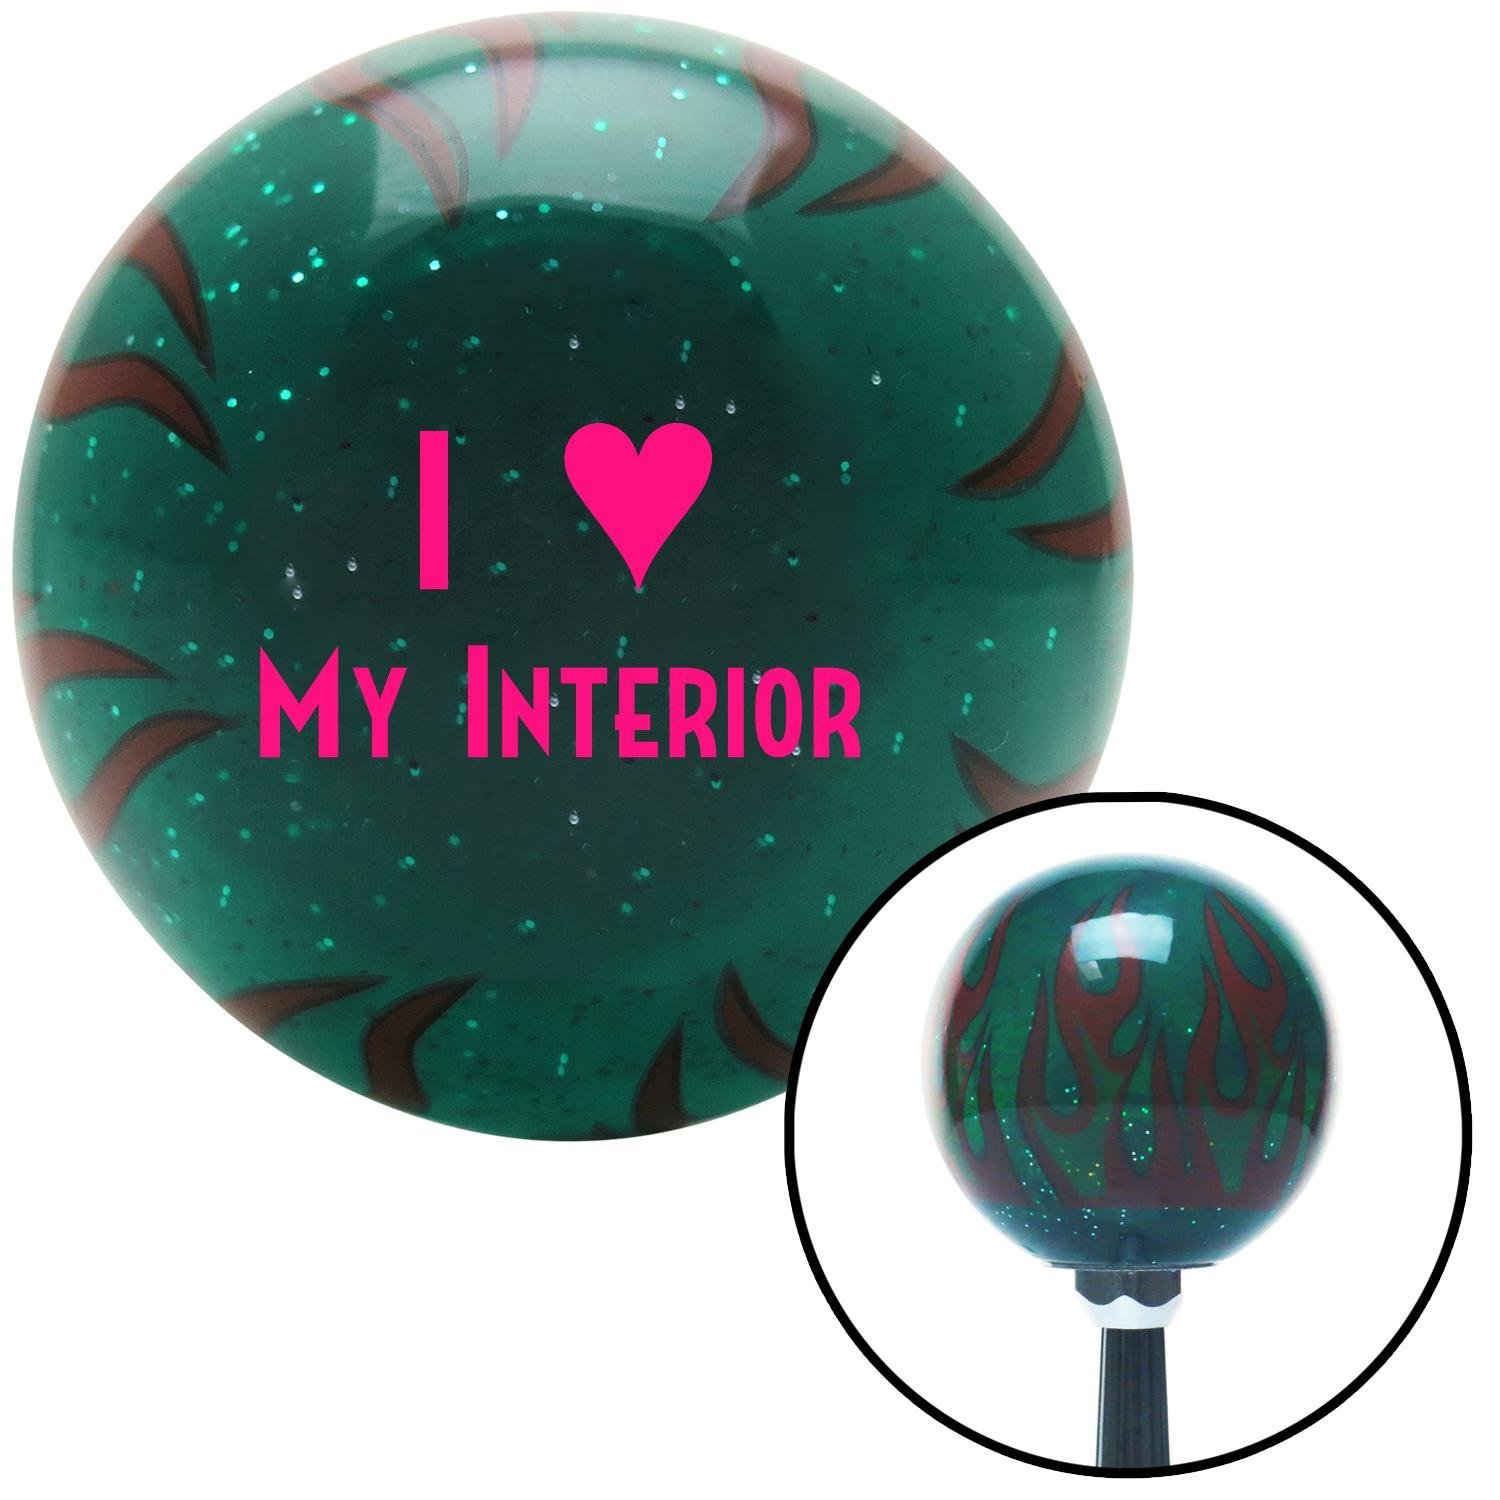 American Shifter 262204 Green Flame Metal Flake Shift Knob with M16 x 1.5 Insert Pink I 3 My Interior